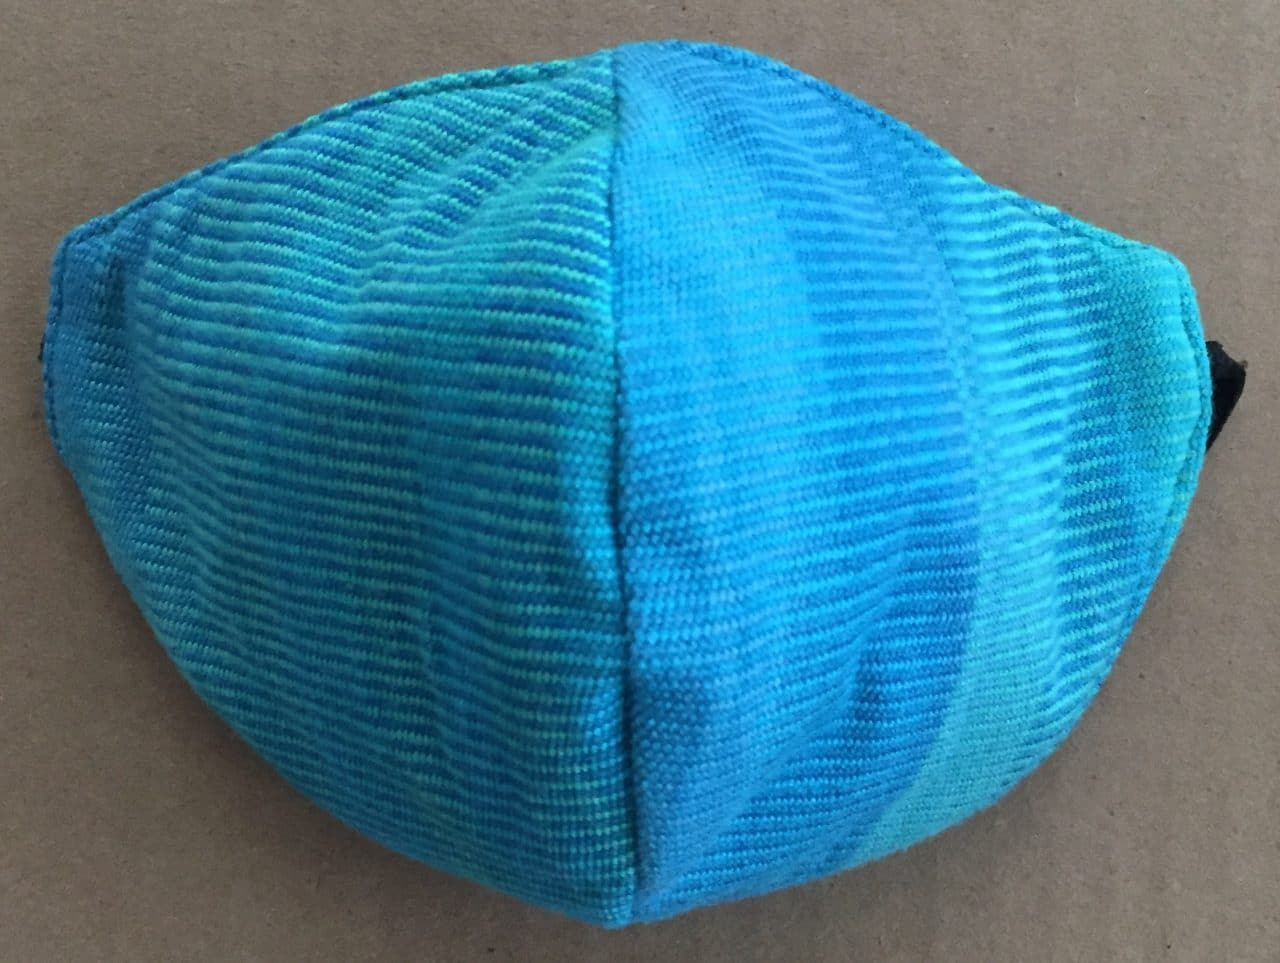 Turquoise, Celestial Blues - Handwoven Lightweight Bamboo Mask